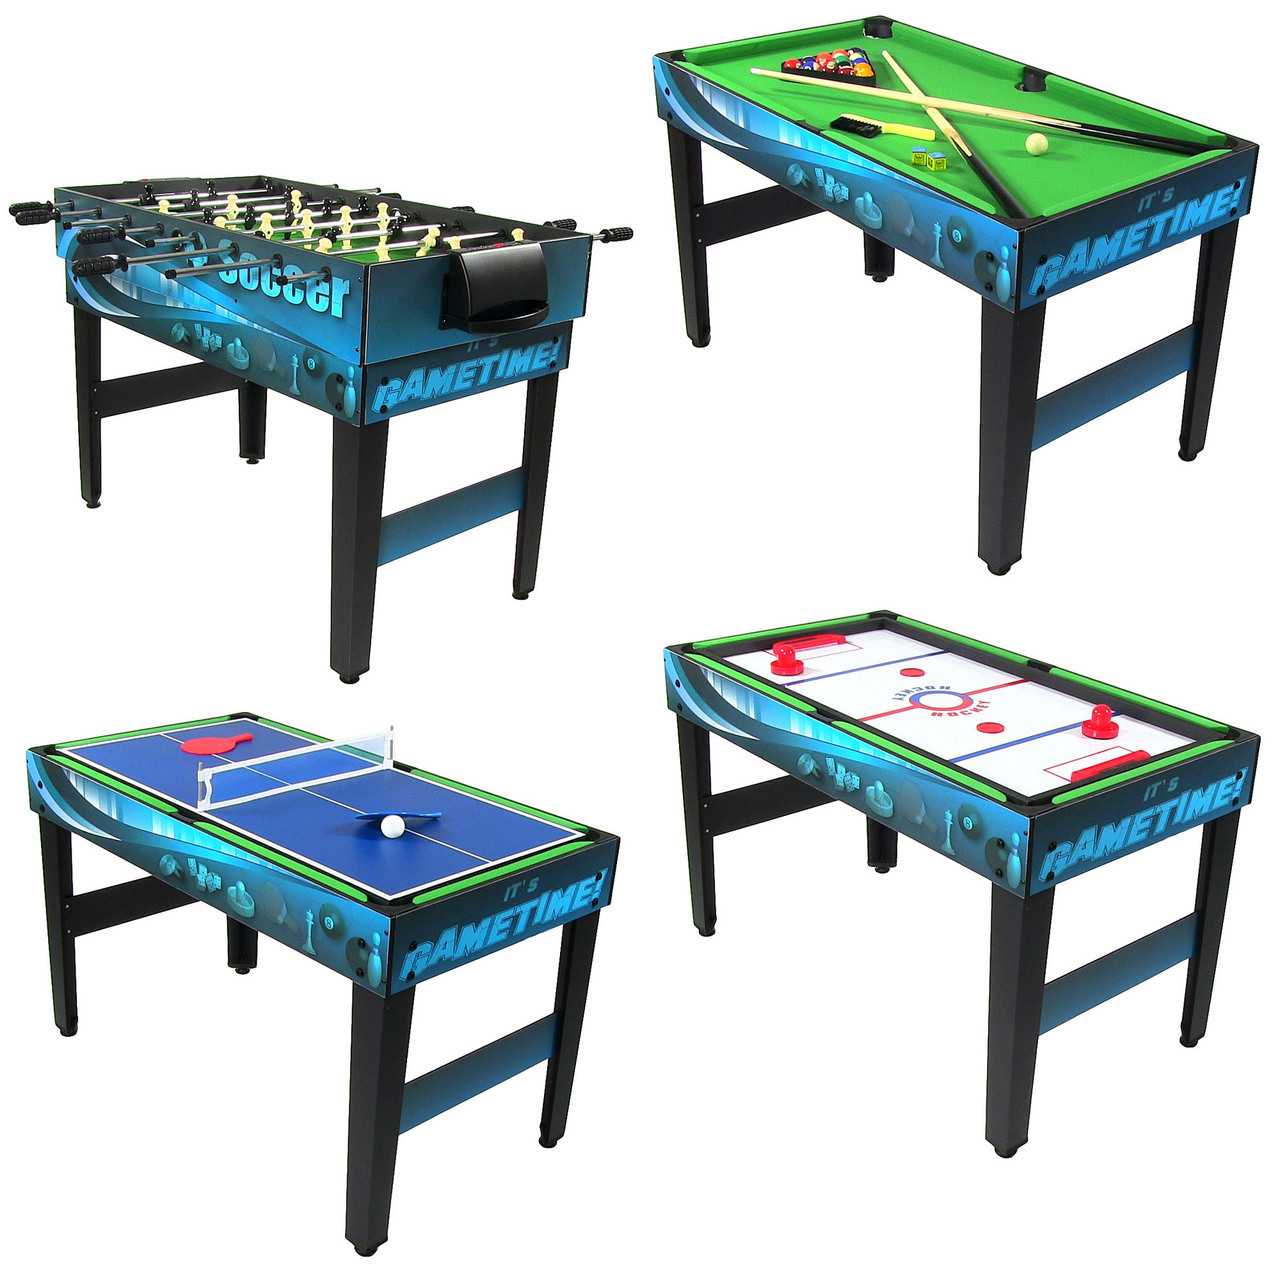 Multi game 10 in 1 kids game table billiards foosball for 10 pool table